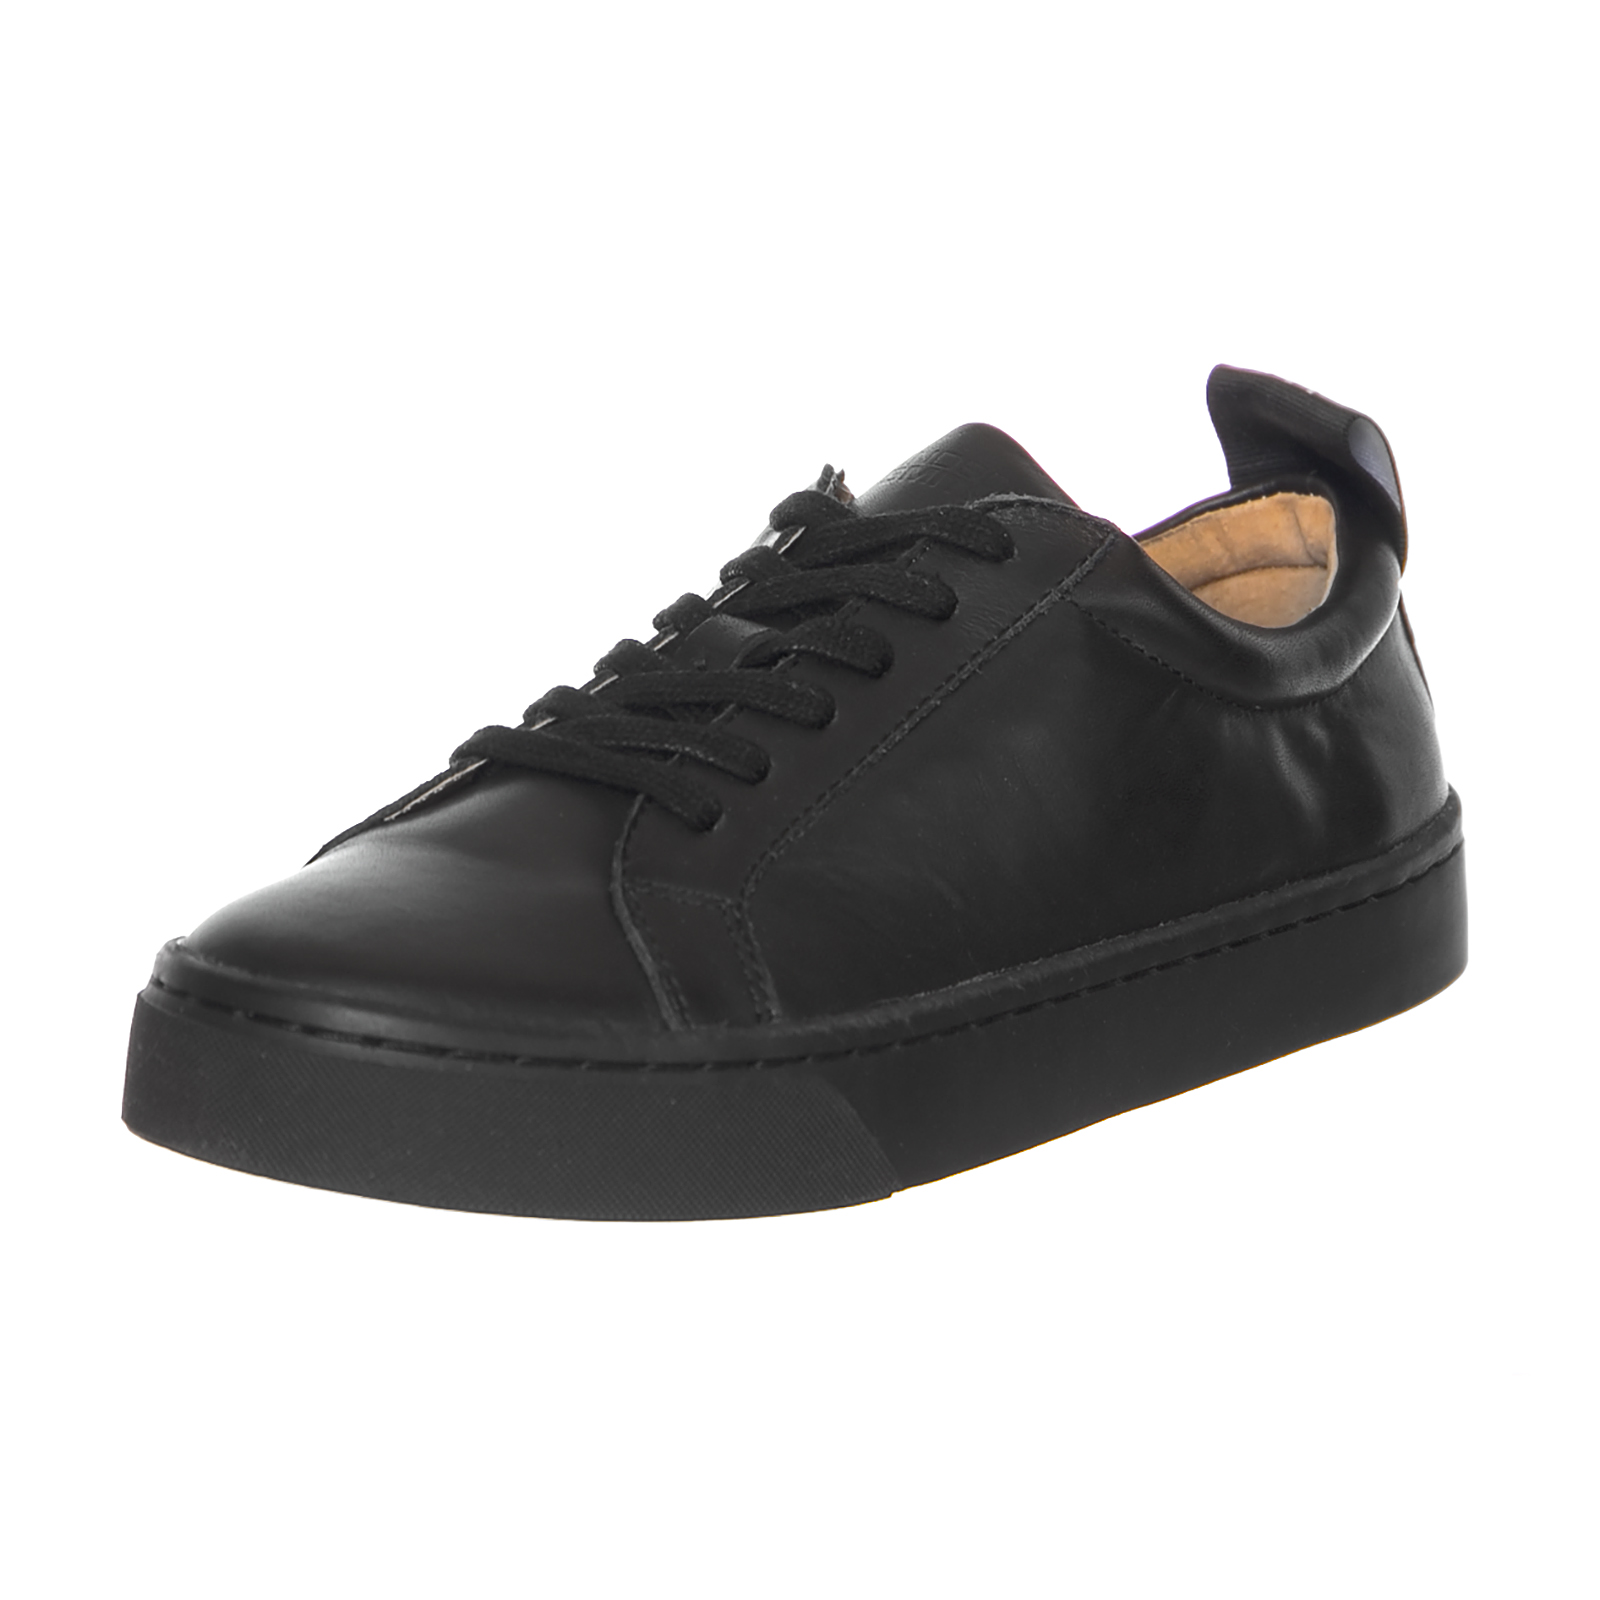 Windsor Smith Zapatillas Estepa Black Negro